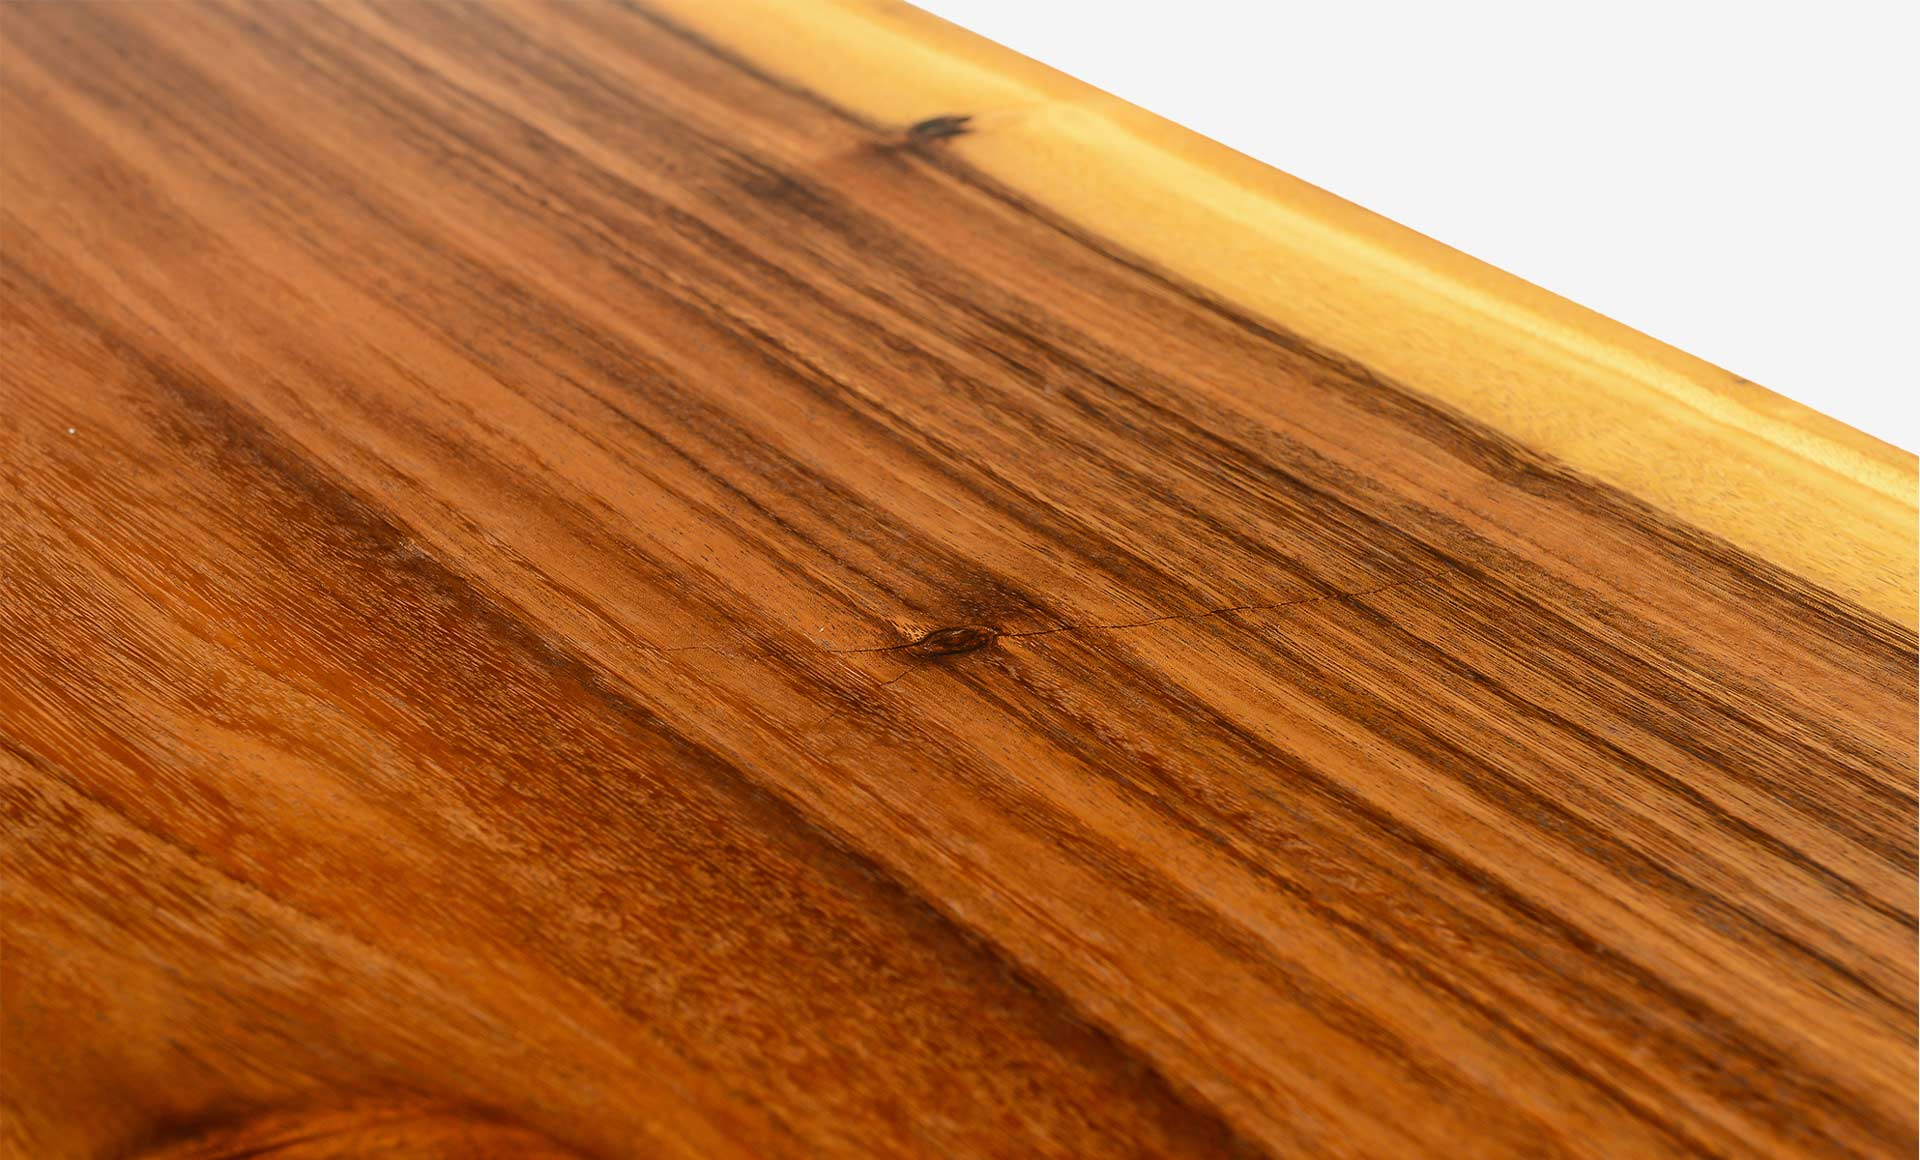 Suar Wood vs South American Walnut vs American Walnut – What's the difference?